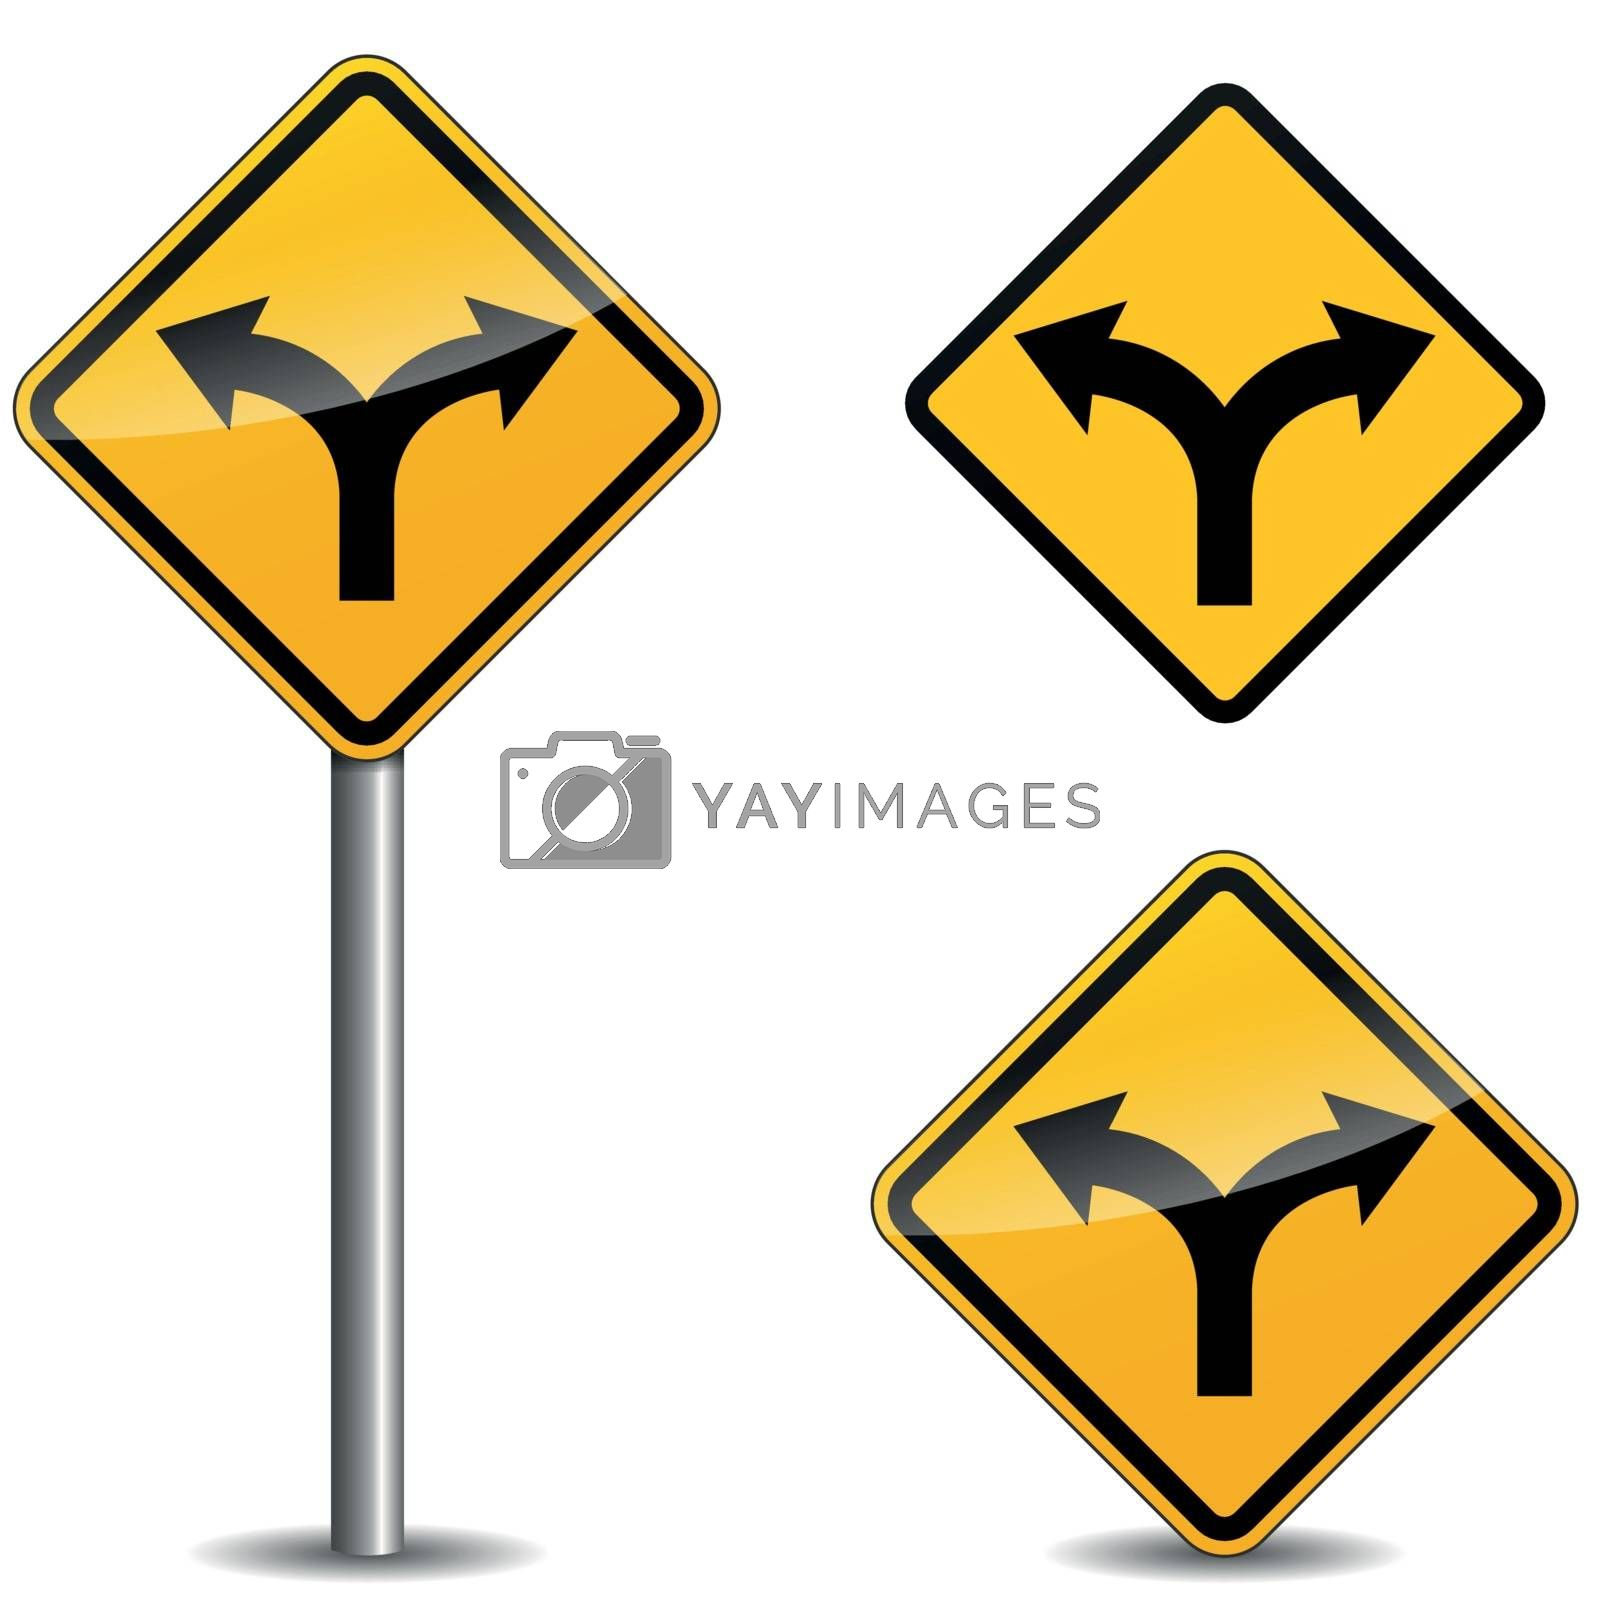 Royalty free image of Vector yellow arrows sign by nickylarson974